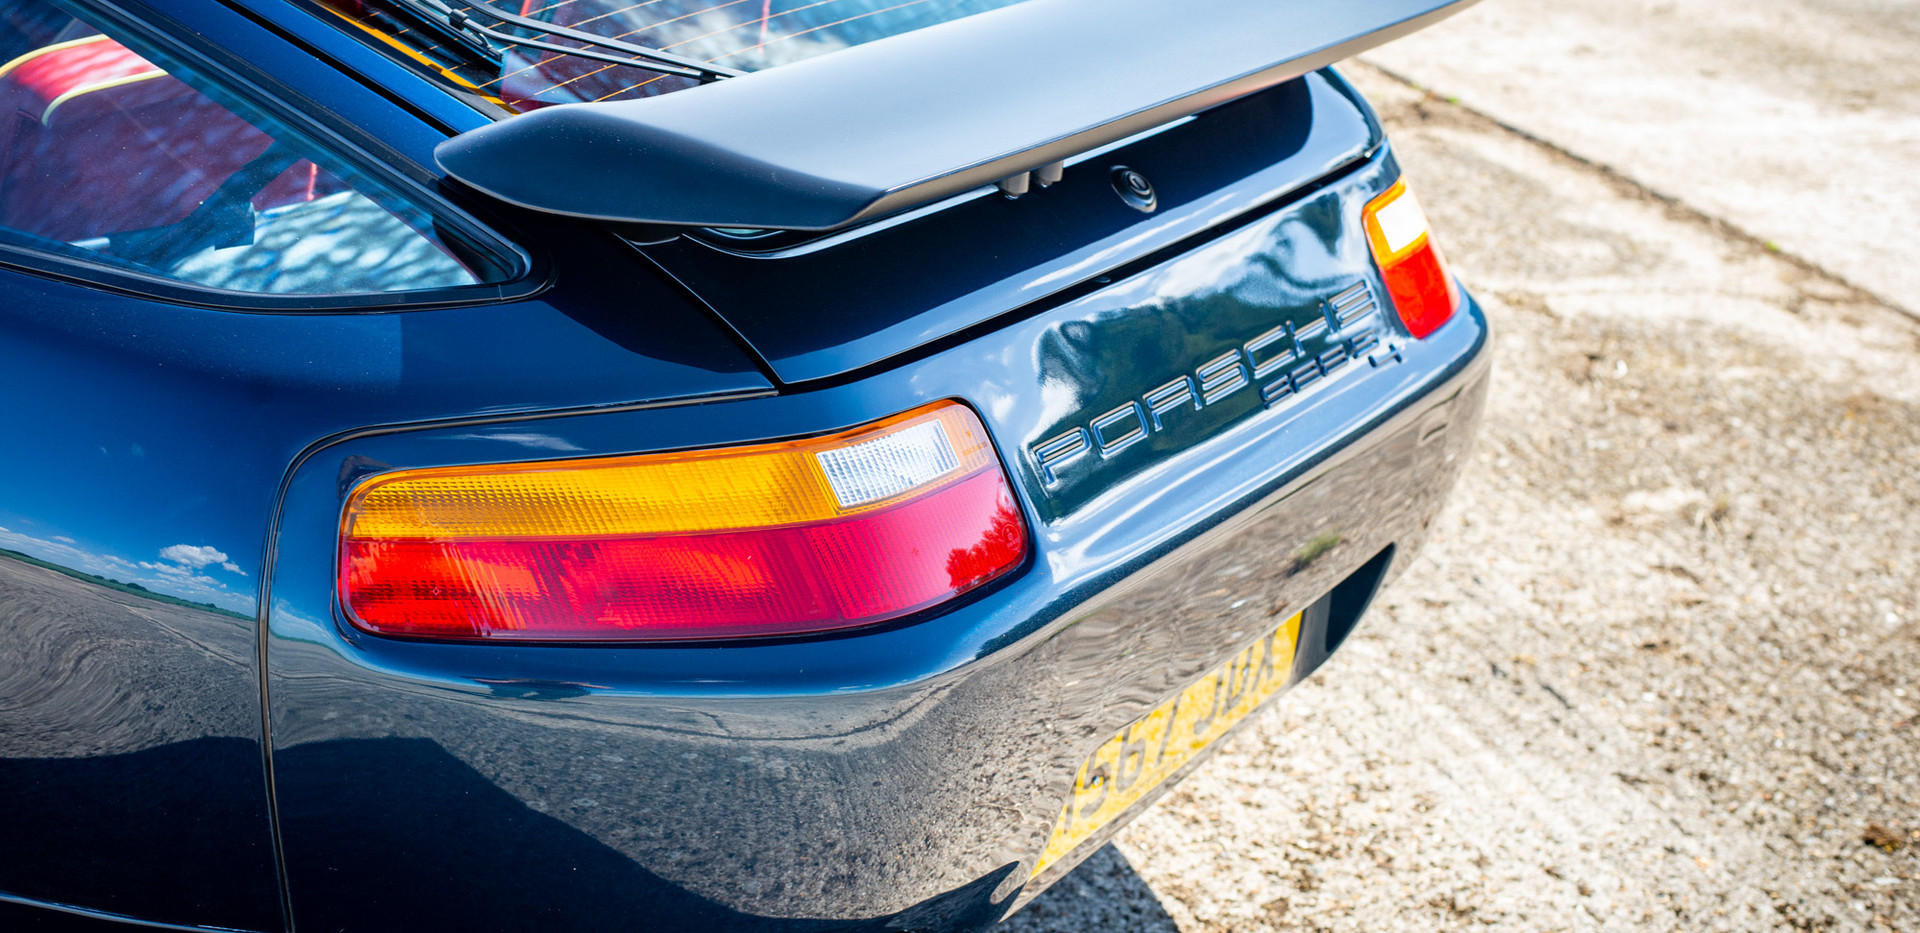 Porsche_928_ForSale Uk London-15.jpg